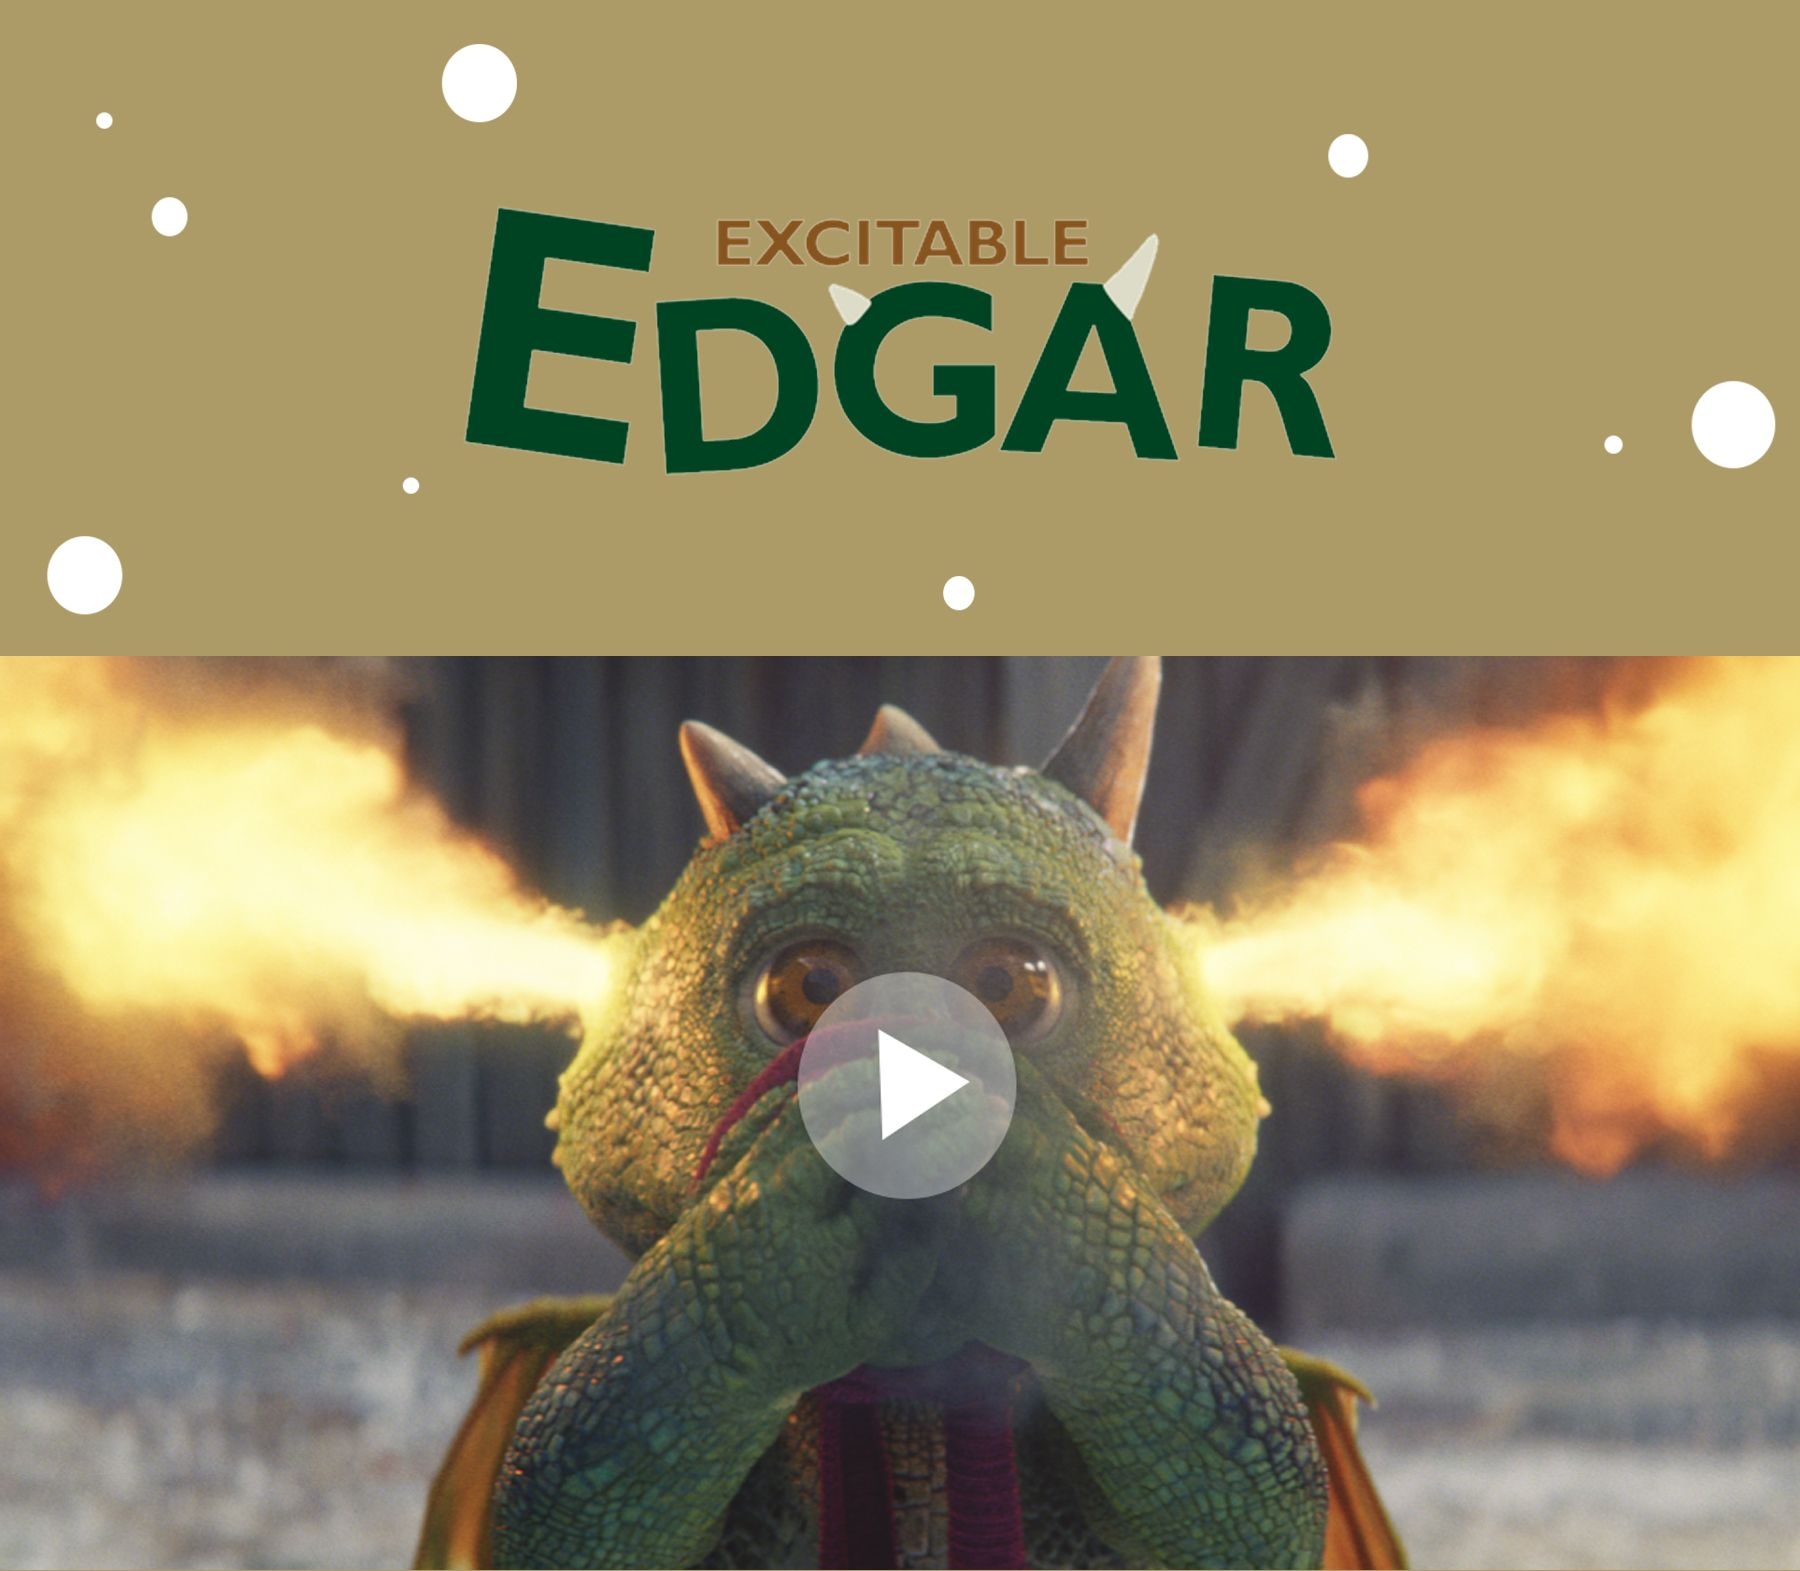 Excitable Edgar TV ad